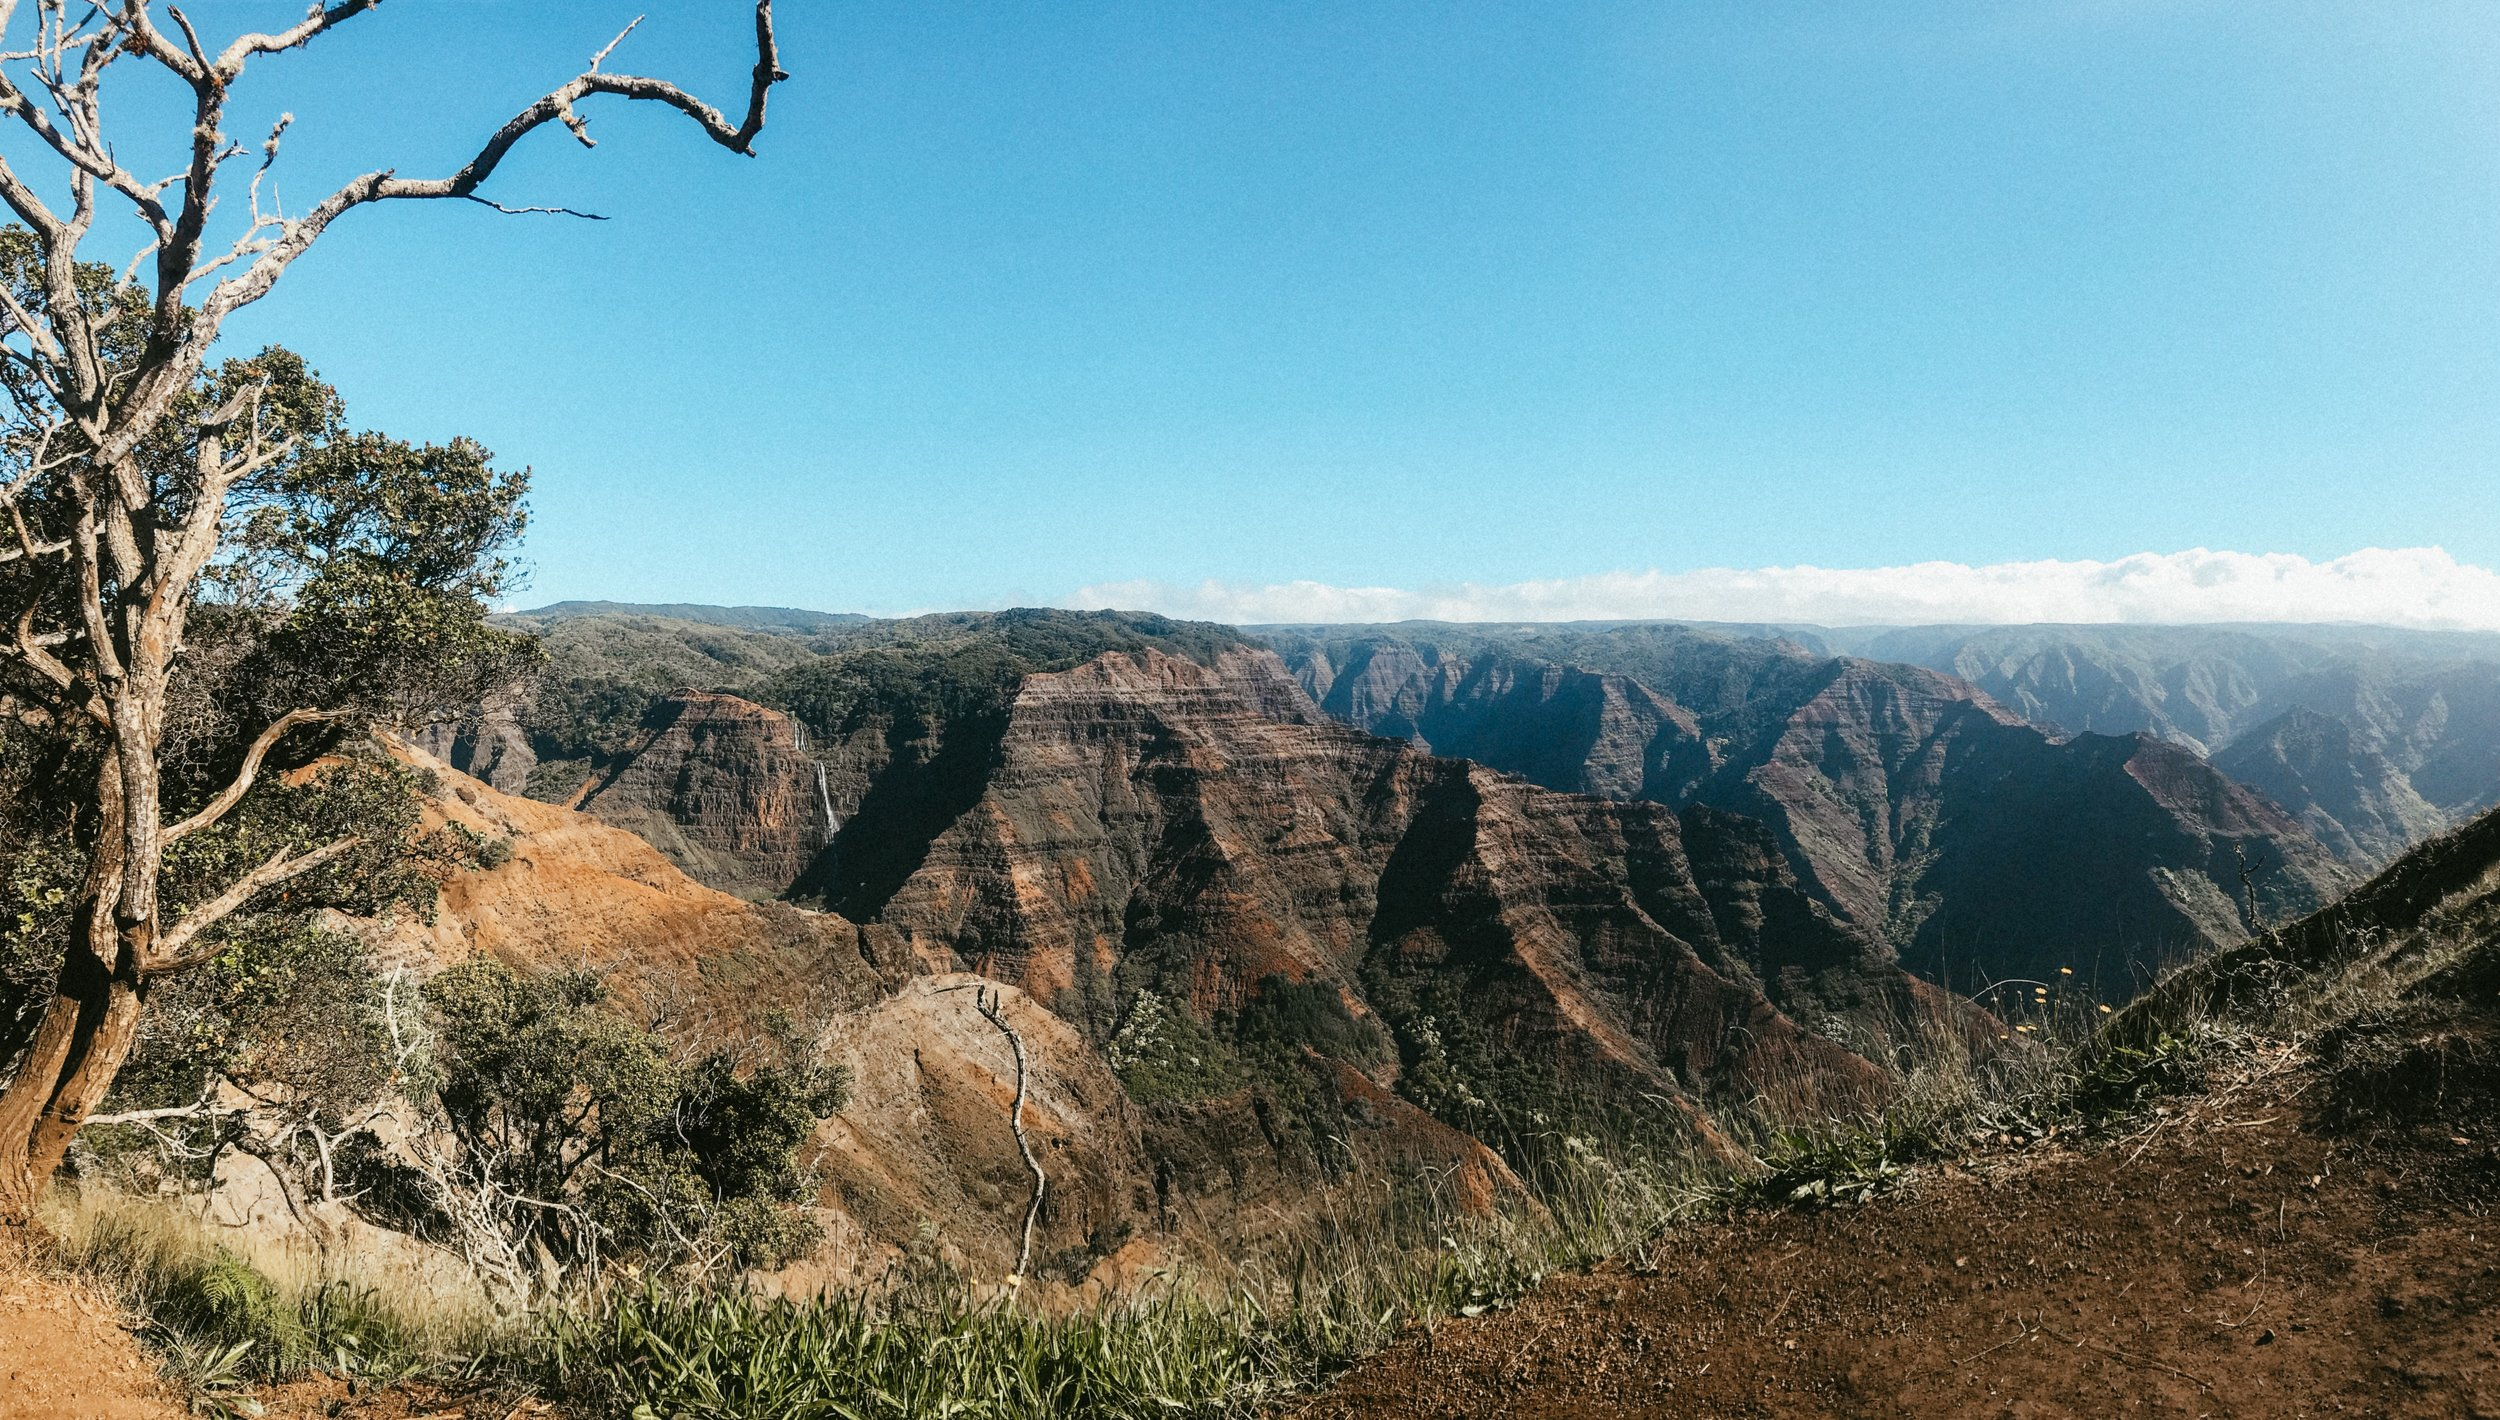 The next morning, we leisurely wound our way up through Waimea to take in the views of the canyon.